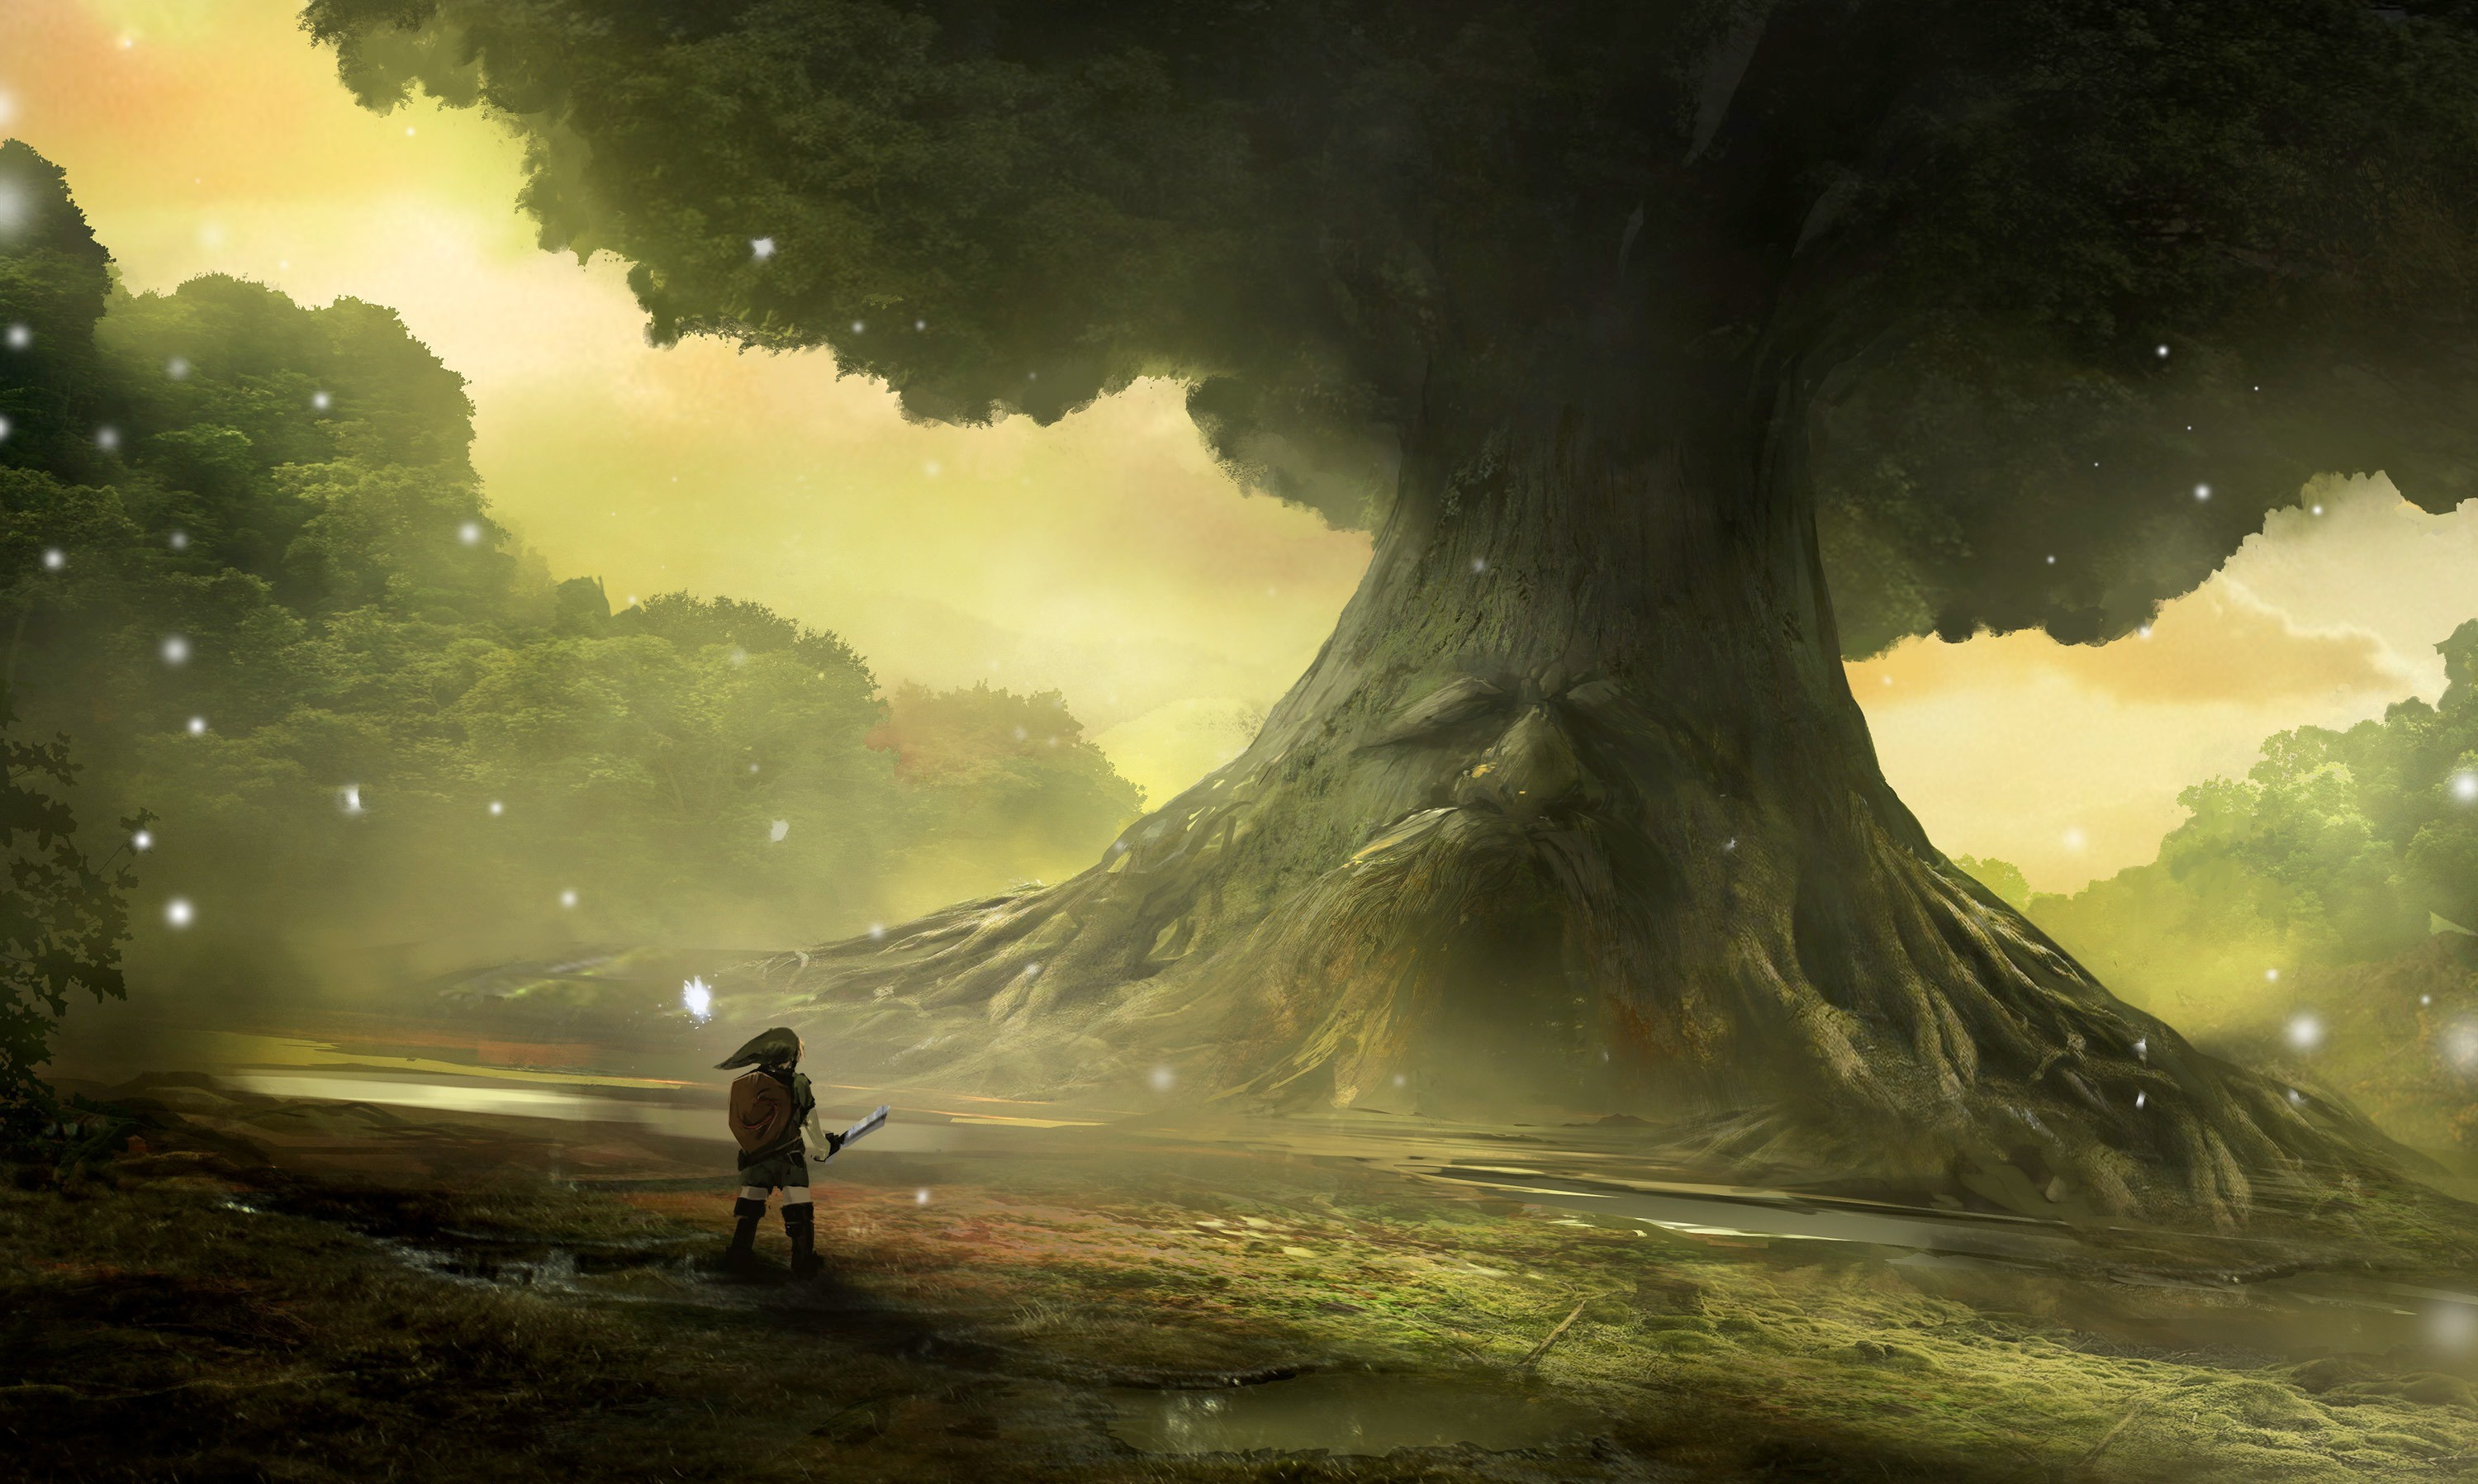 The Legend Of Zelda Hd Wallpaper The Legend Of Zelda Ocarina Of Time Full Hd Fondo De